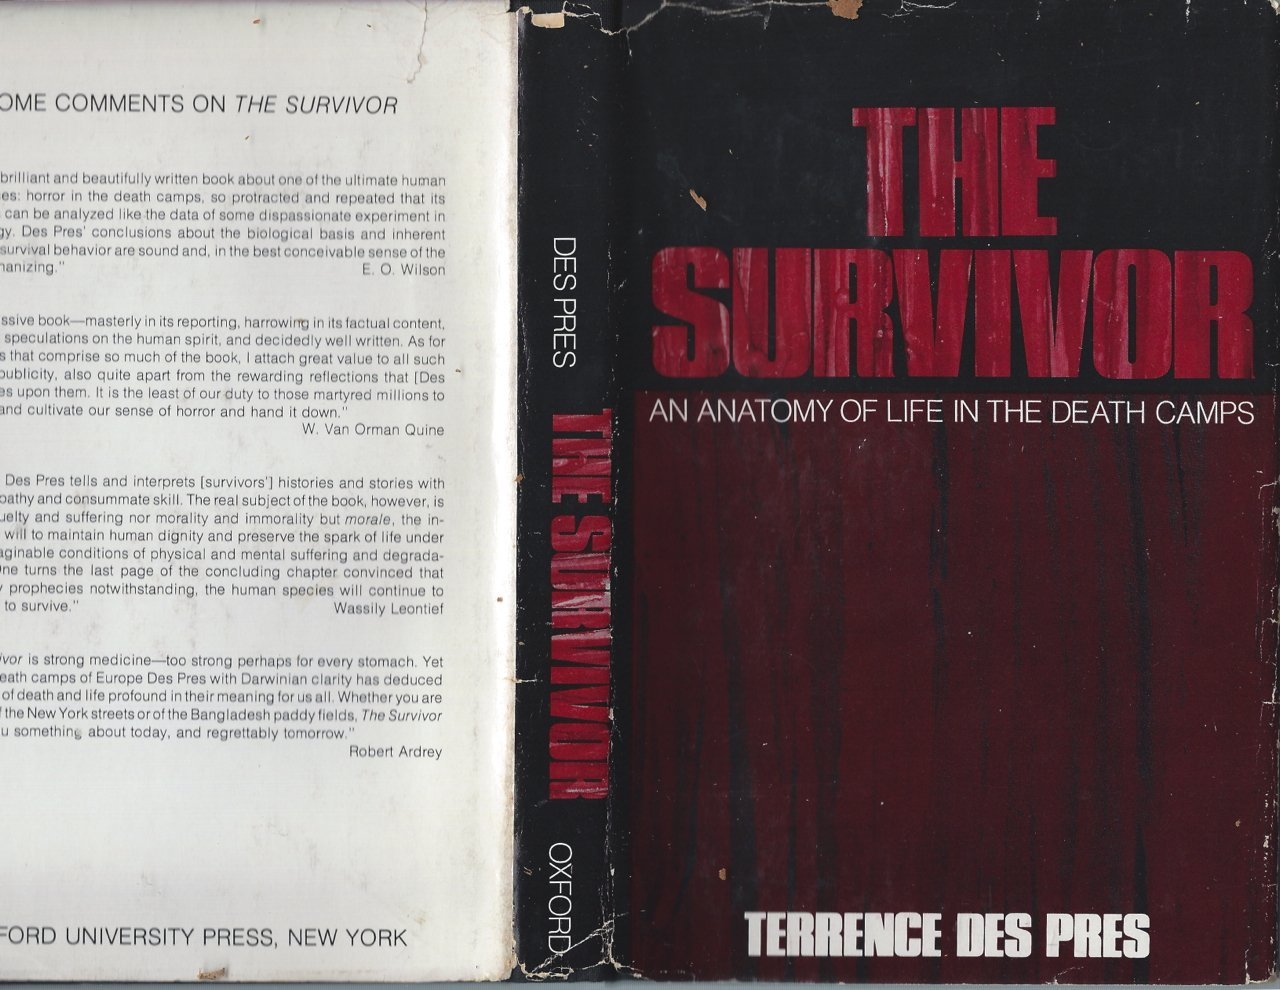 Buy The Survivor Anatomy Of Life In The Death Camps Book Online At